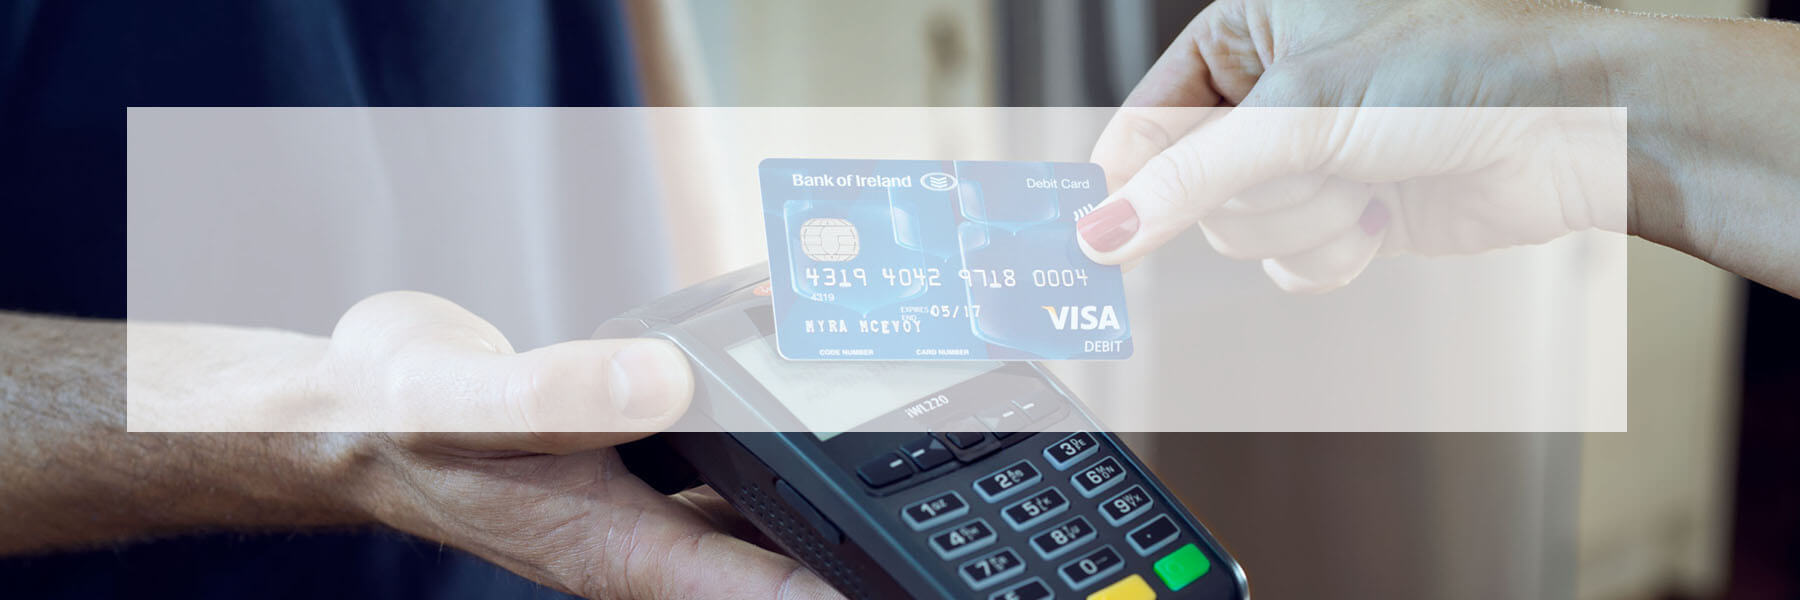 contactless card banner